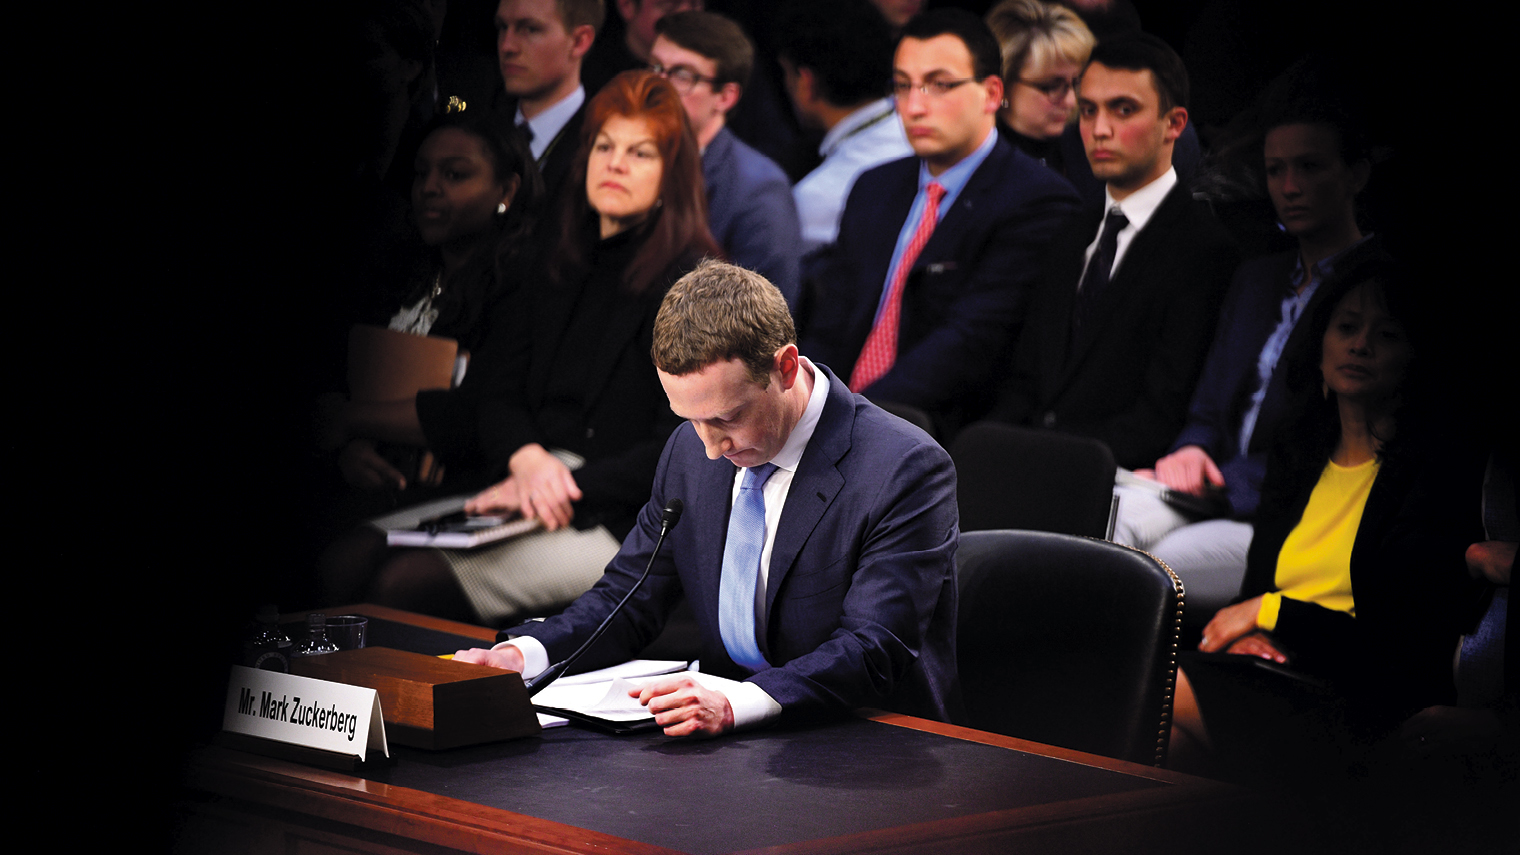 Mark Zuckerberg testifying in court after data scandal